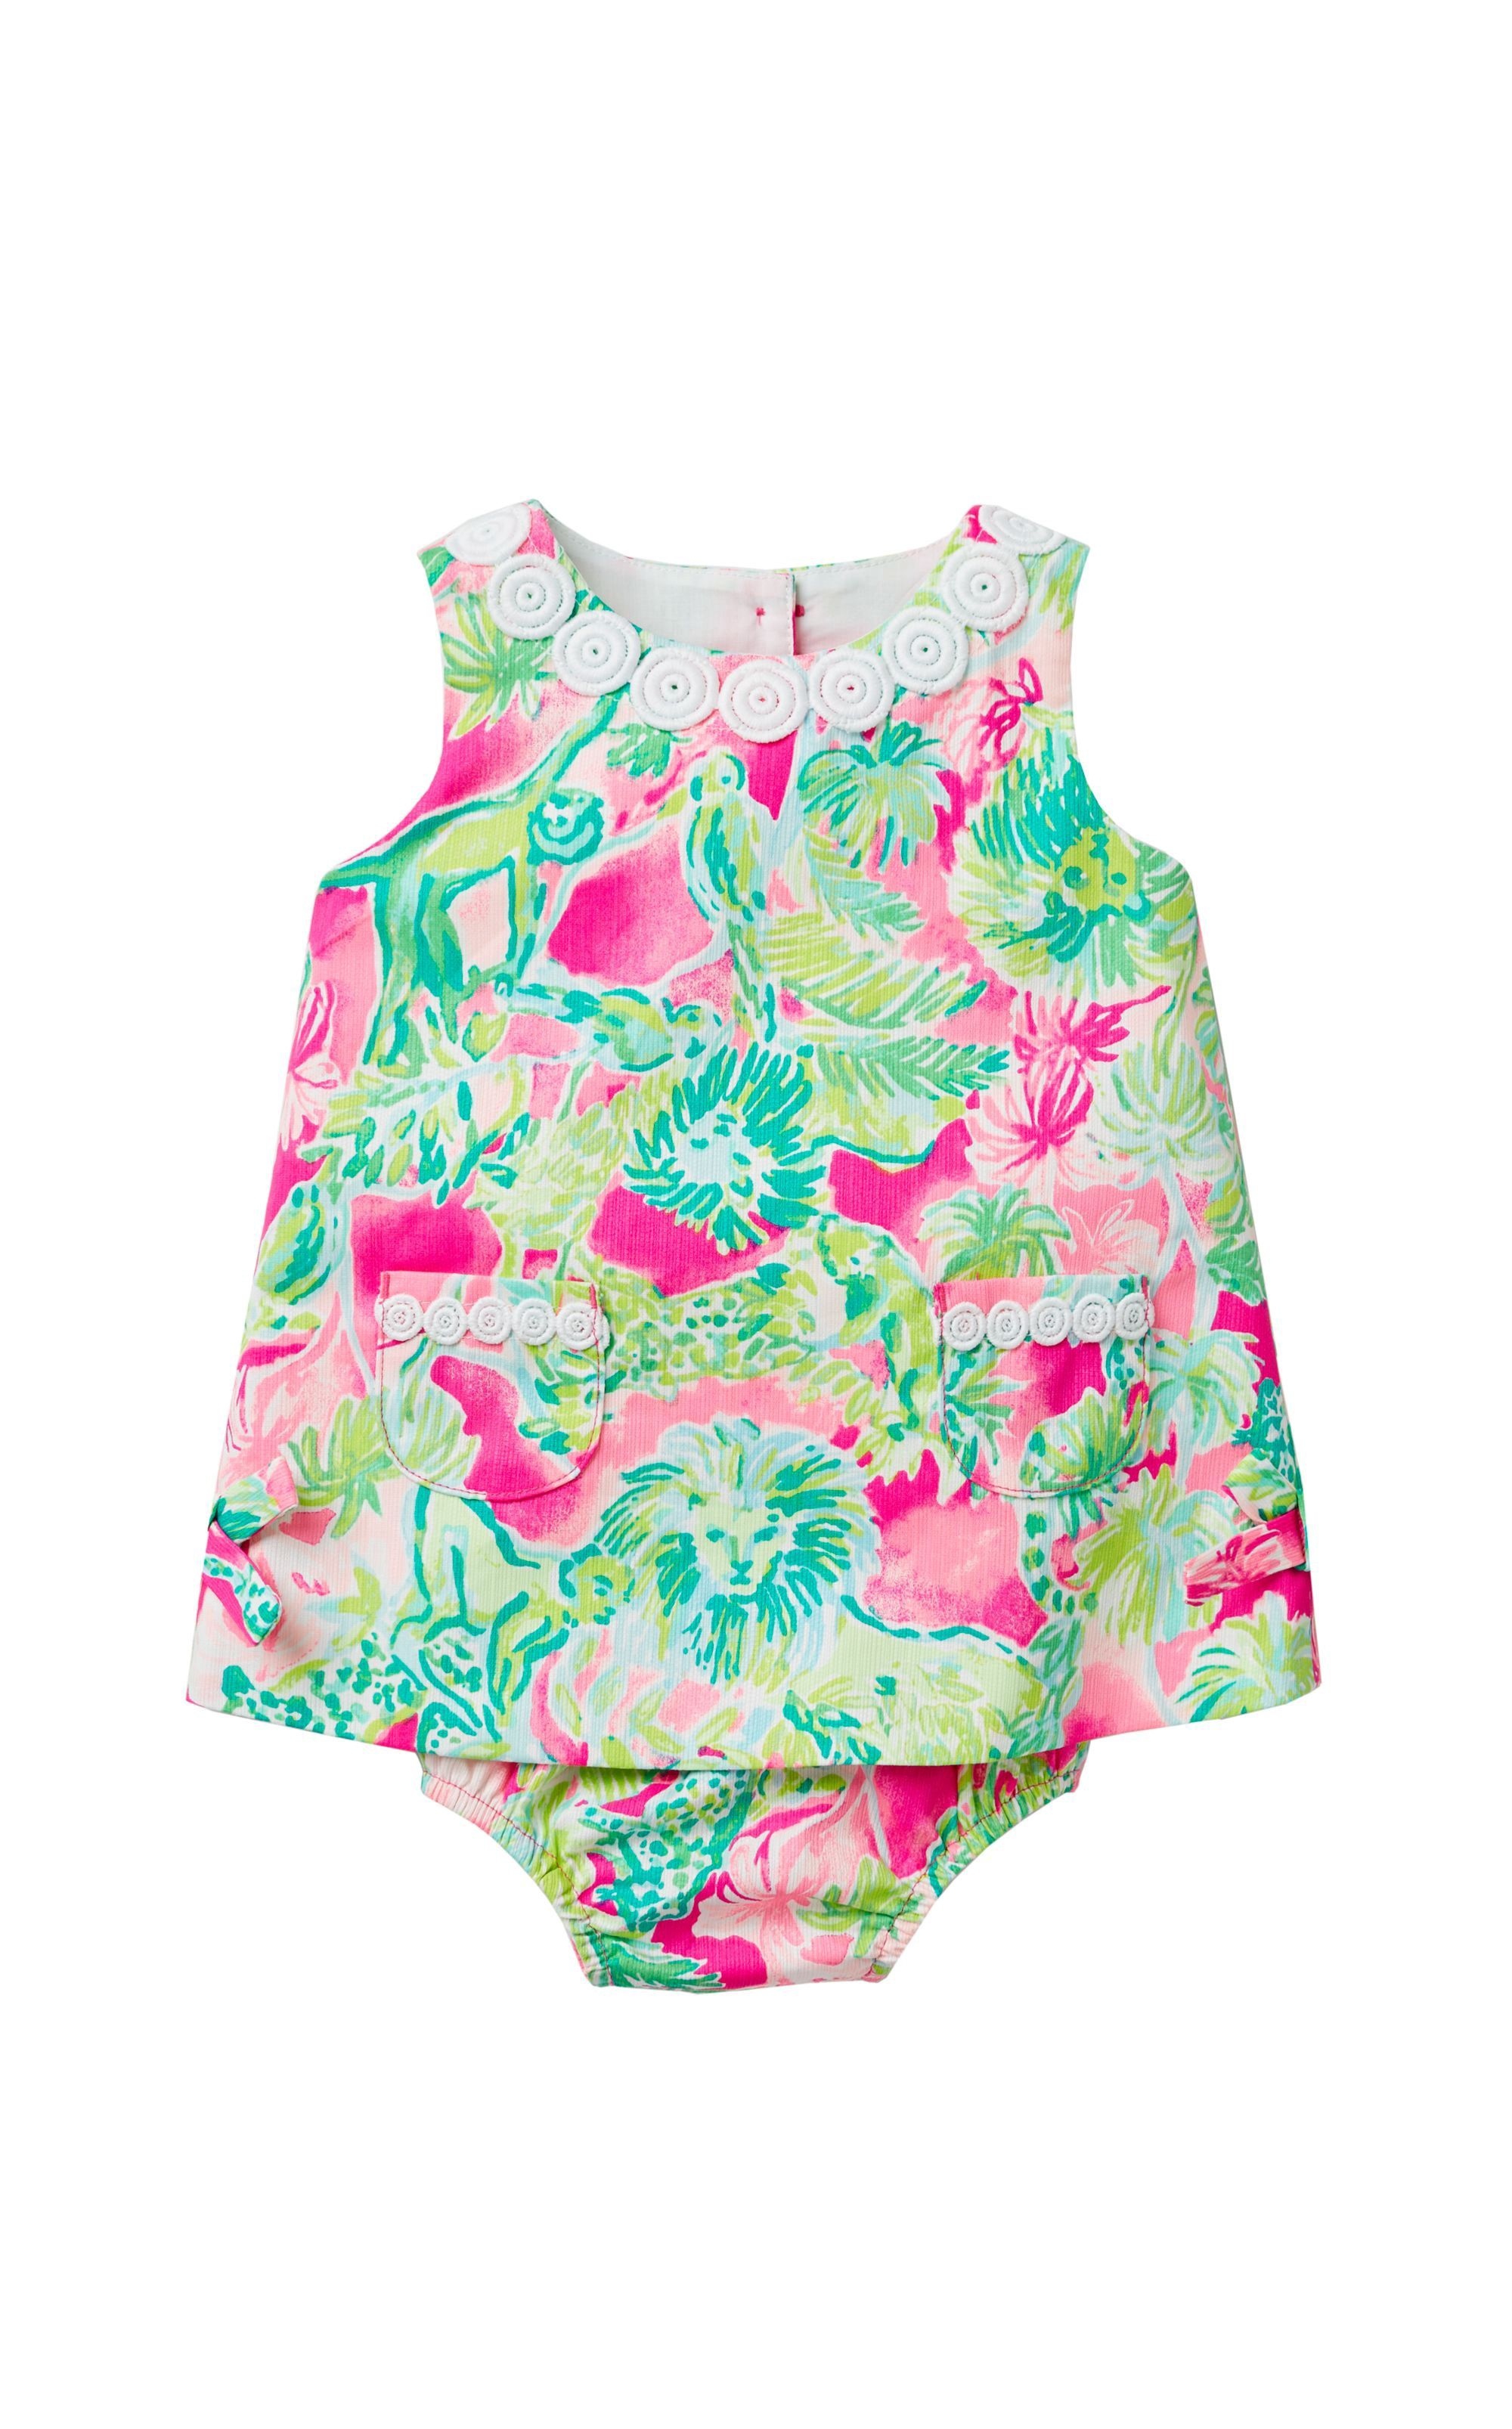 Lilly Pulitzer Baby Shift 3 6M